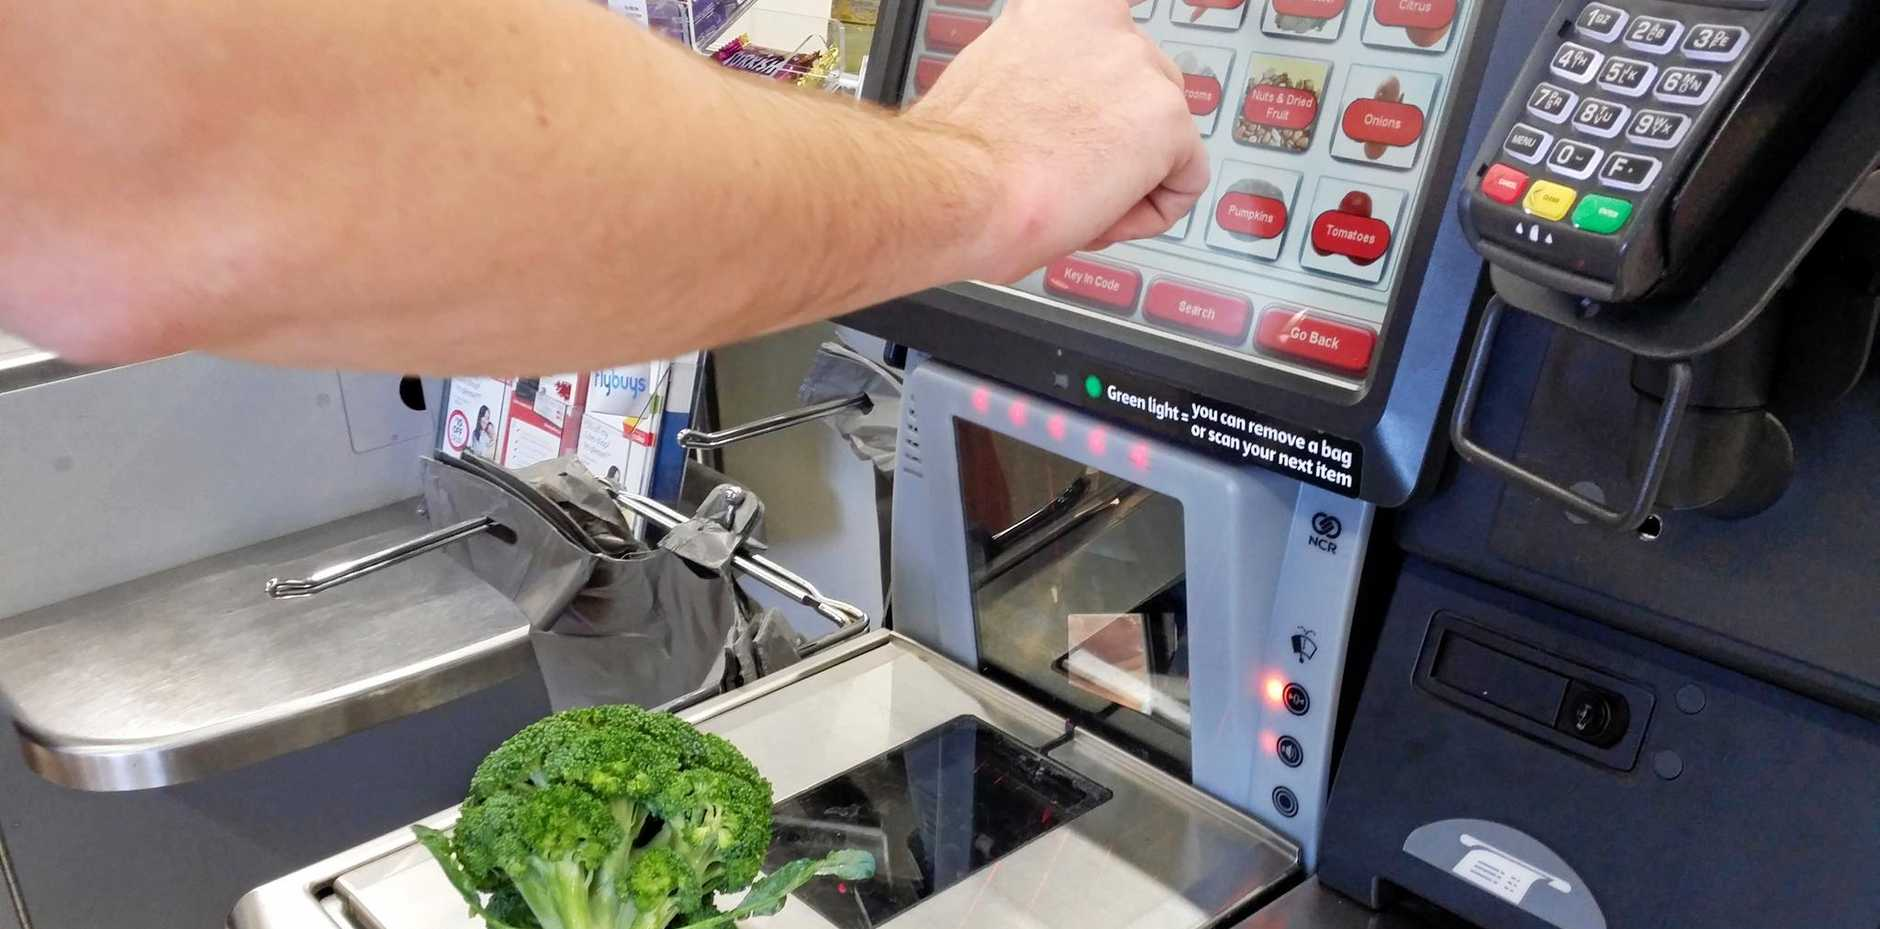 Police are investigating a number of stealing offences, including items stolen during self-serve check outs in Bundaberg.